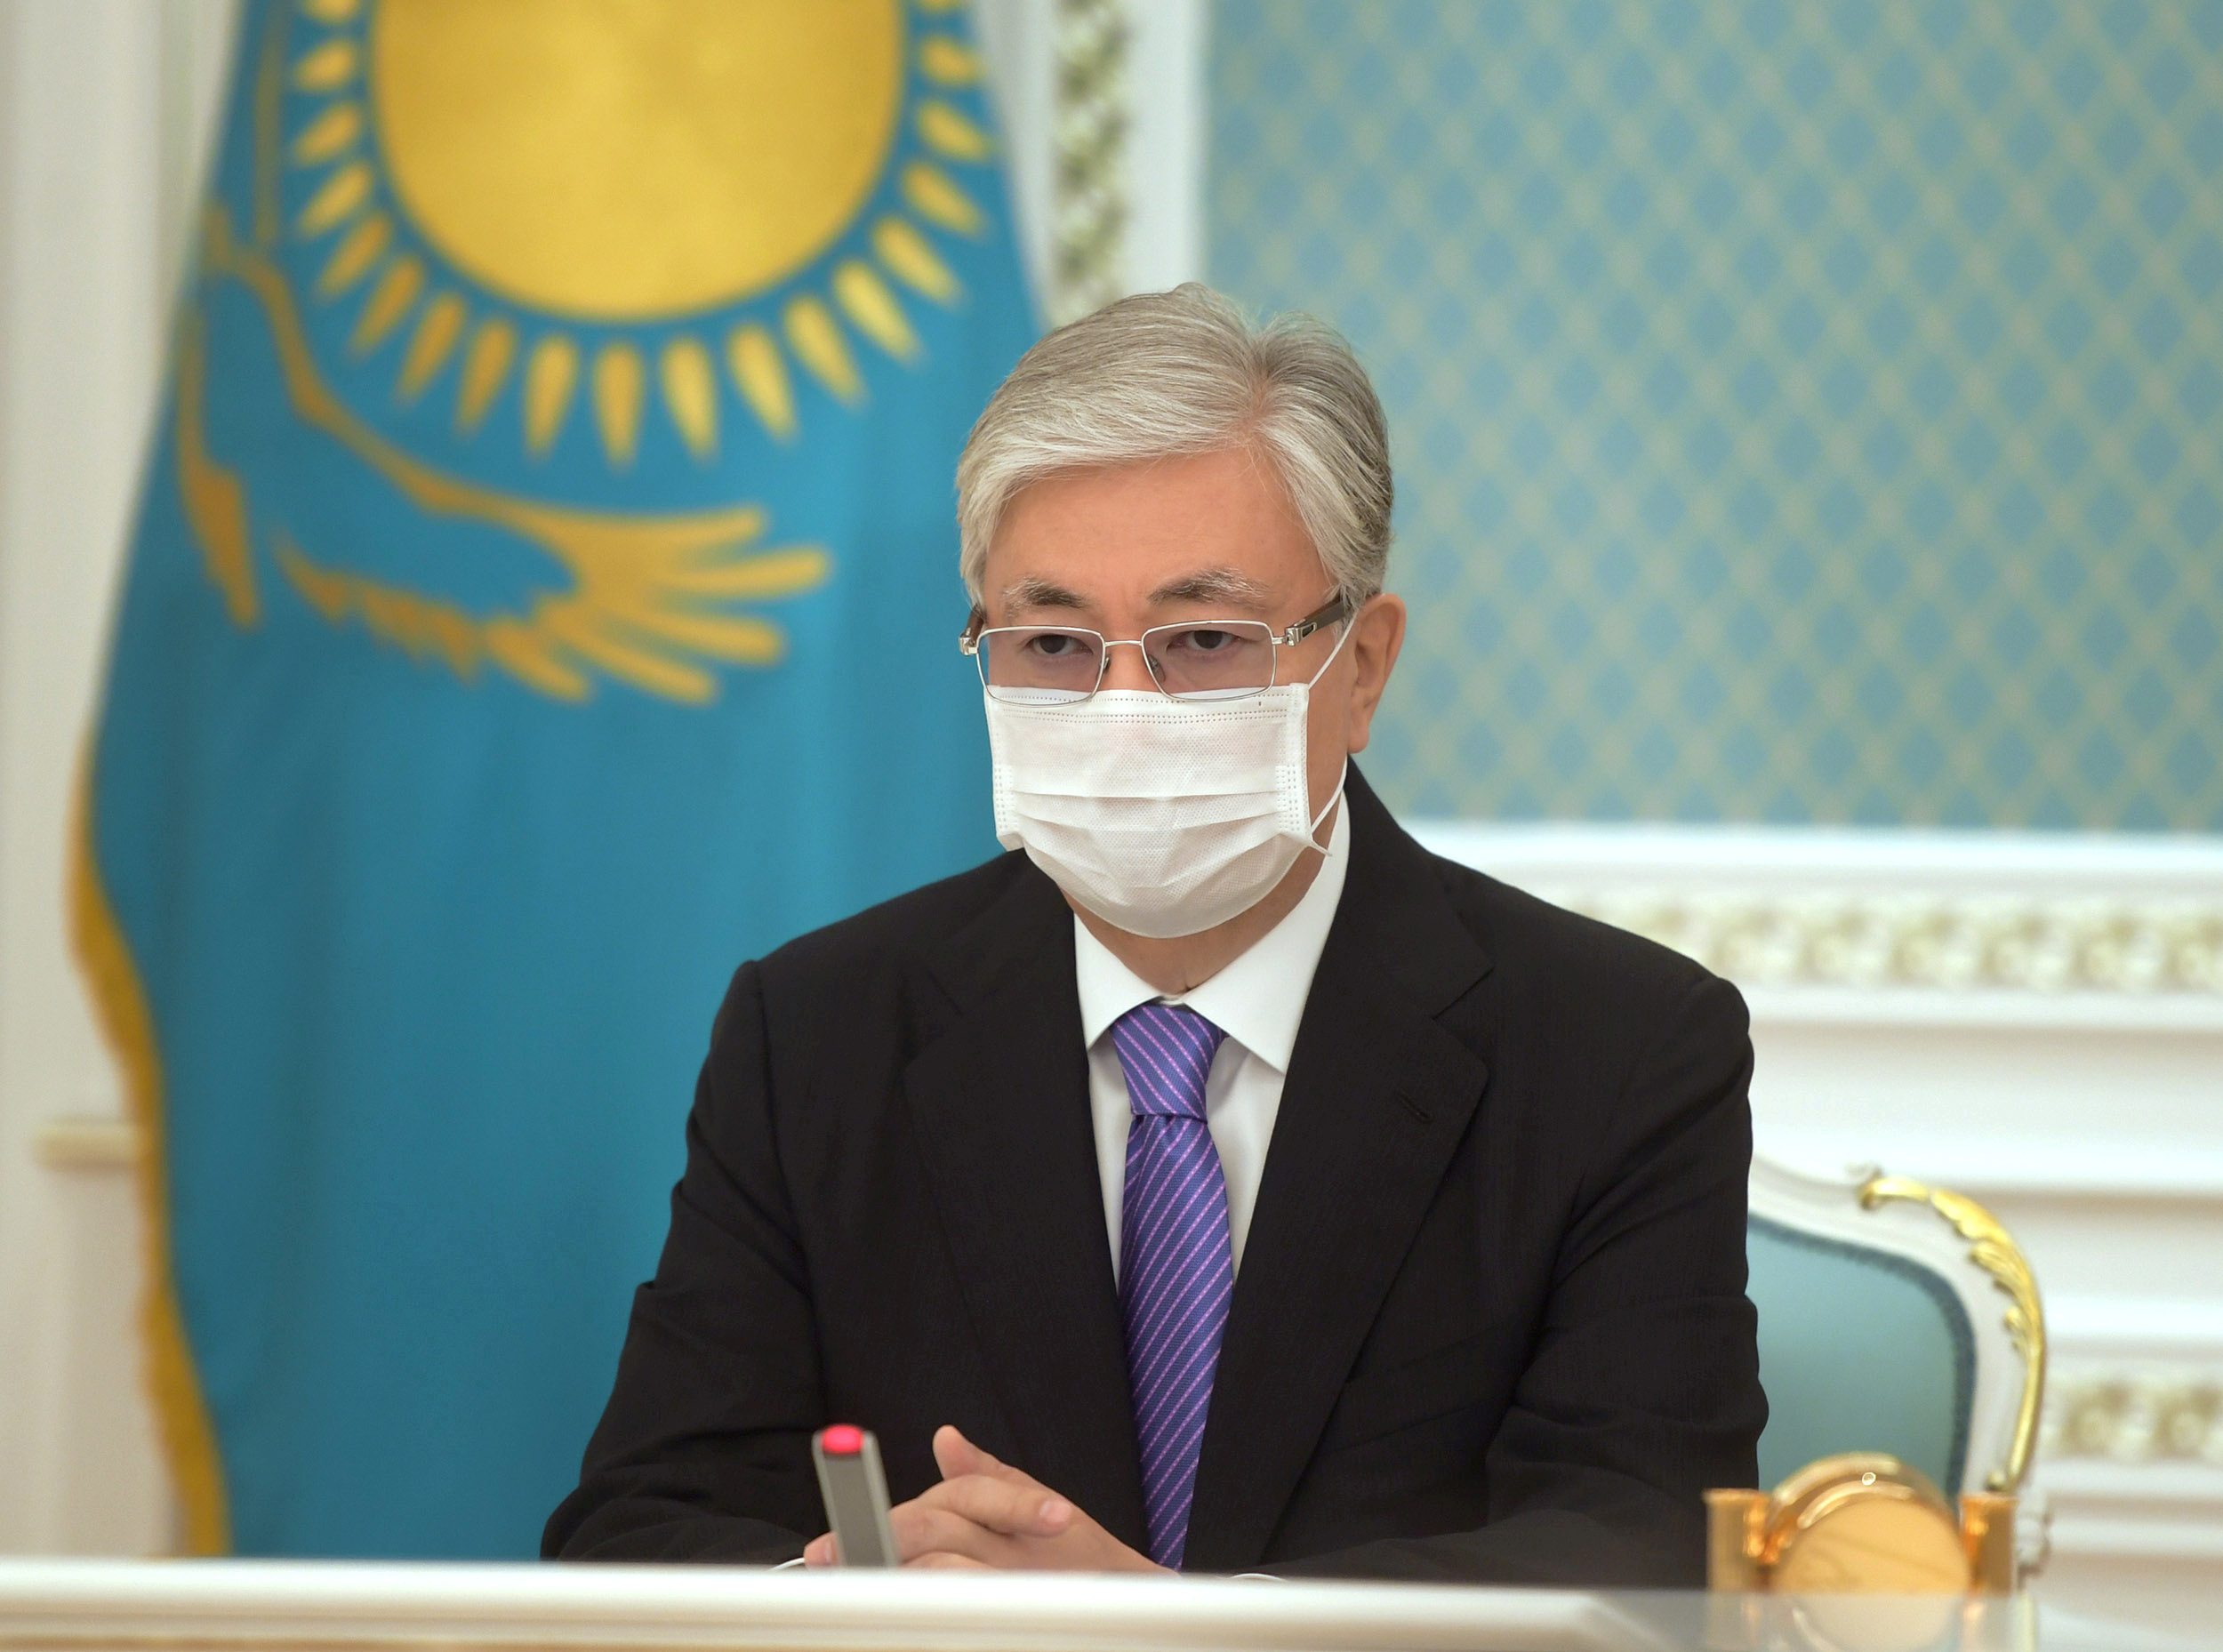 Kazakh President Kassym-Jomart Tokayev wearing a protective face mask participates online in the unveiling ceremony of a monument to Nursultan Nazarbayev, the first president of Kazakhstan, in Nur-Sultan, Kazakhstan July 3, 2020. Kazakh Presidential Press Service/Handout via REUTERS